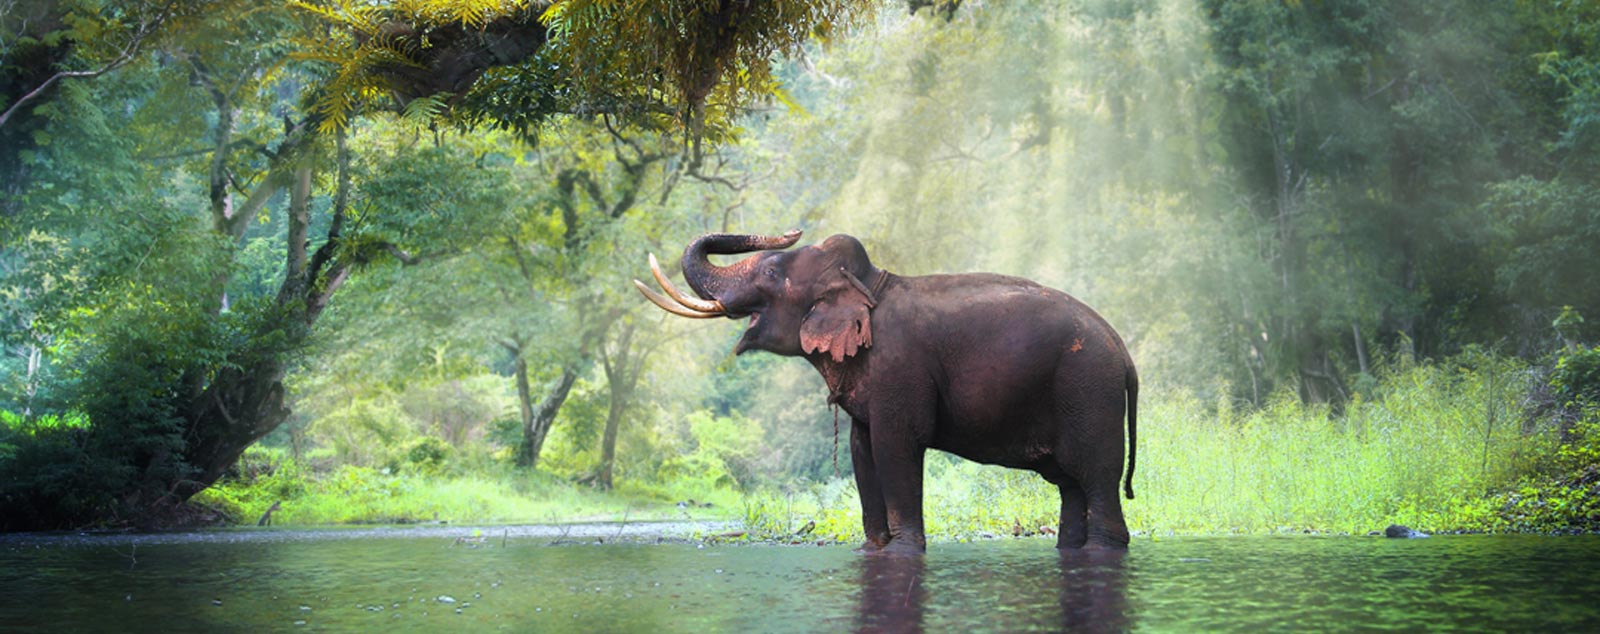 An elephant soaking herself in a river with sunlight pouring through the forest canopy